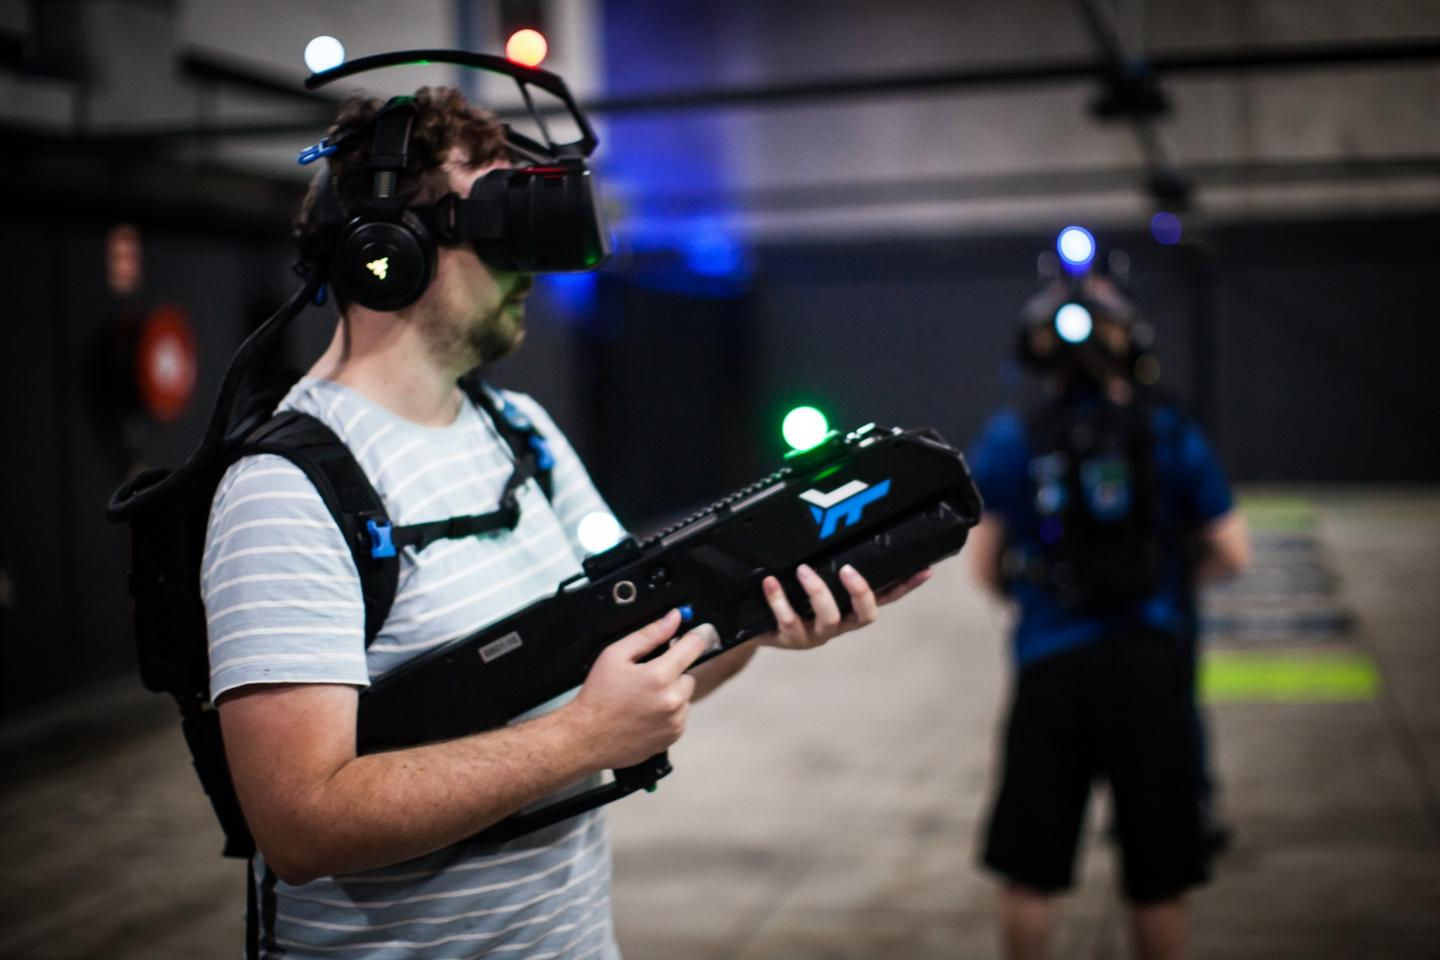 The Zero Latency system tracks players through glowing orbs on their heads and weapons